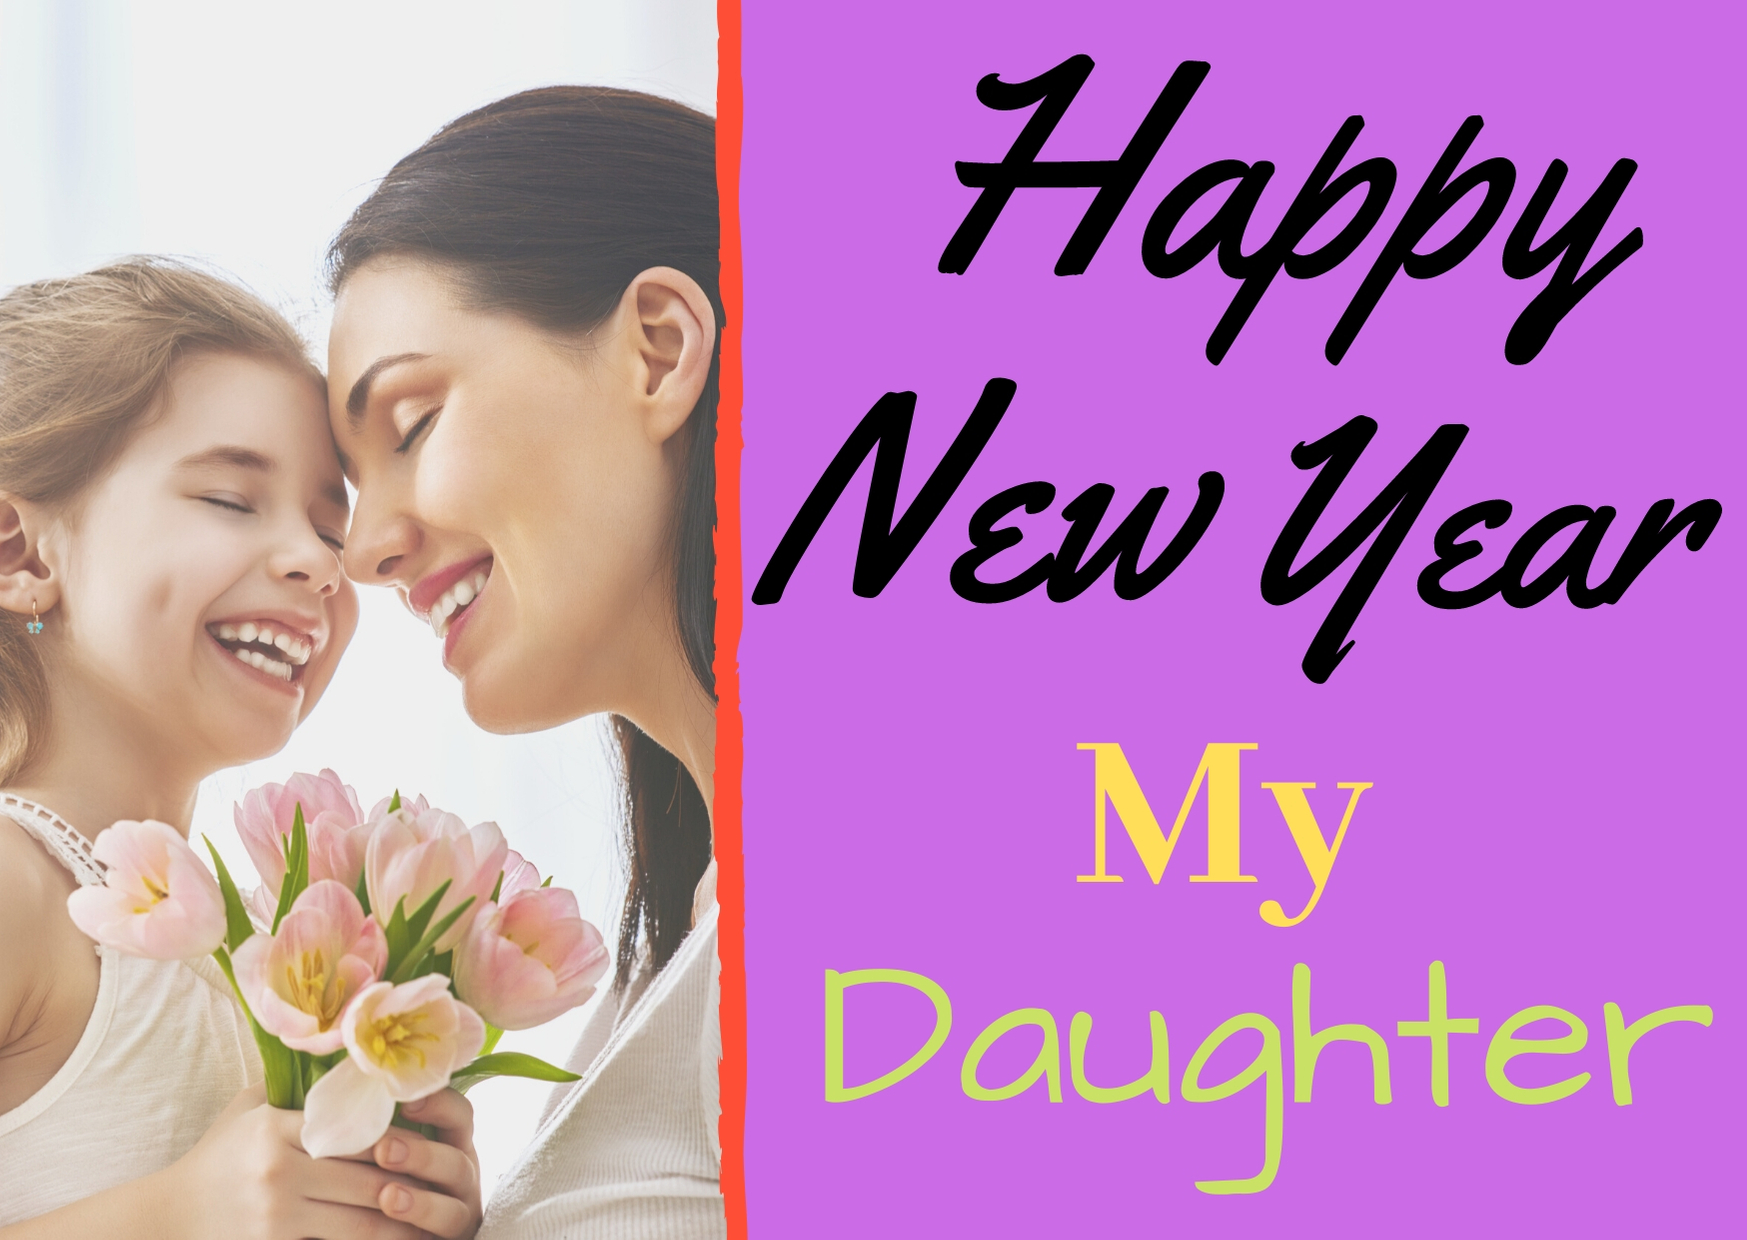 Happy New Year 2021 Wishes For Daughter